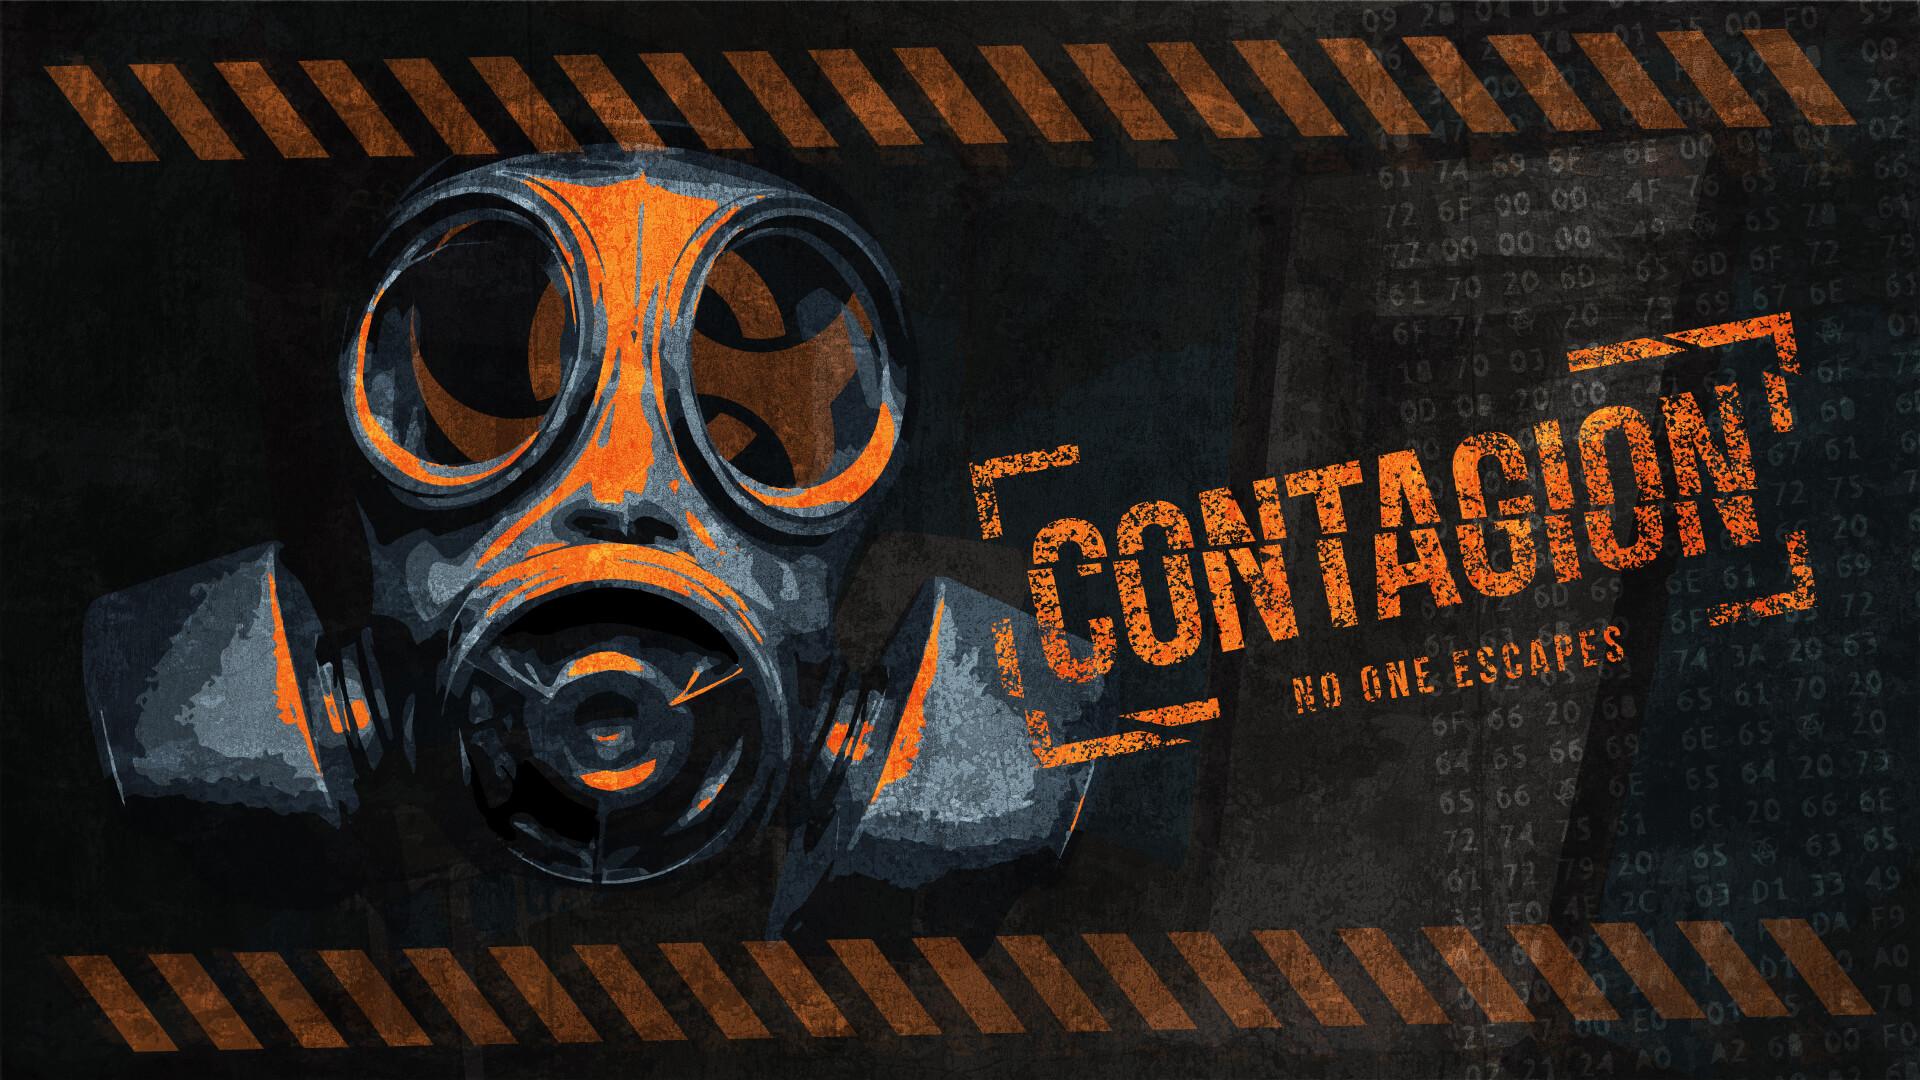 Contagion - Do you and your team have what it takes to break the codes, find the clues, solve the puzzles and escape the room with the antidote before your 60 minutes runs out?